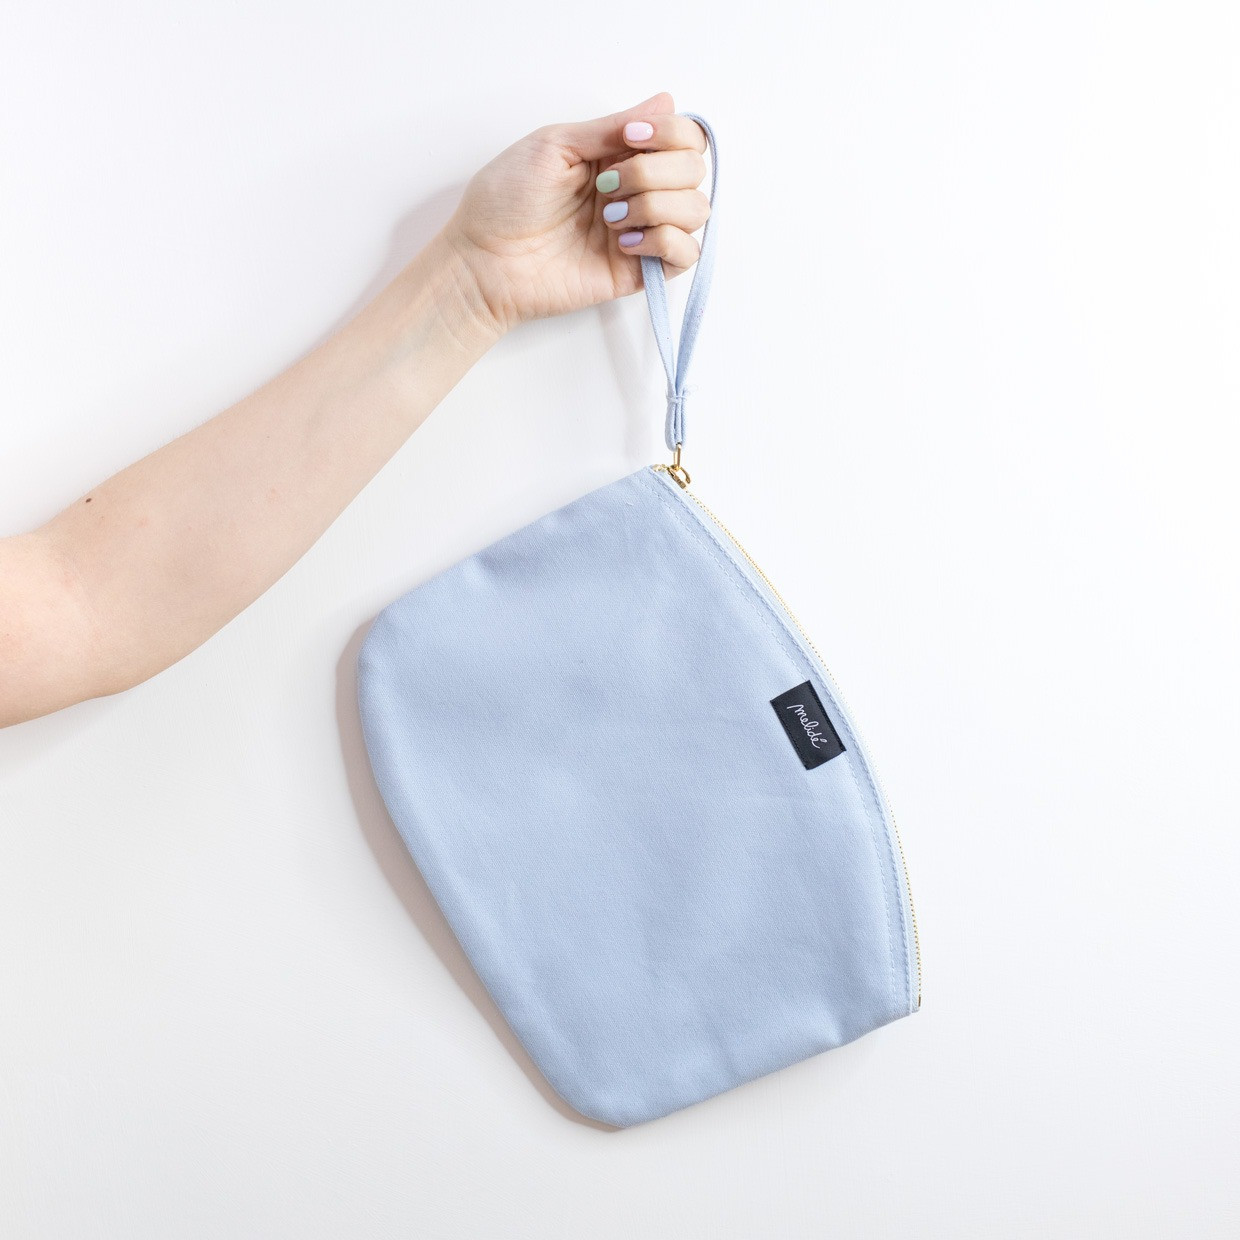 The ZIPPED POUCH L - Eye